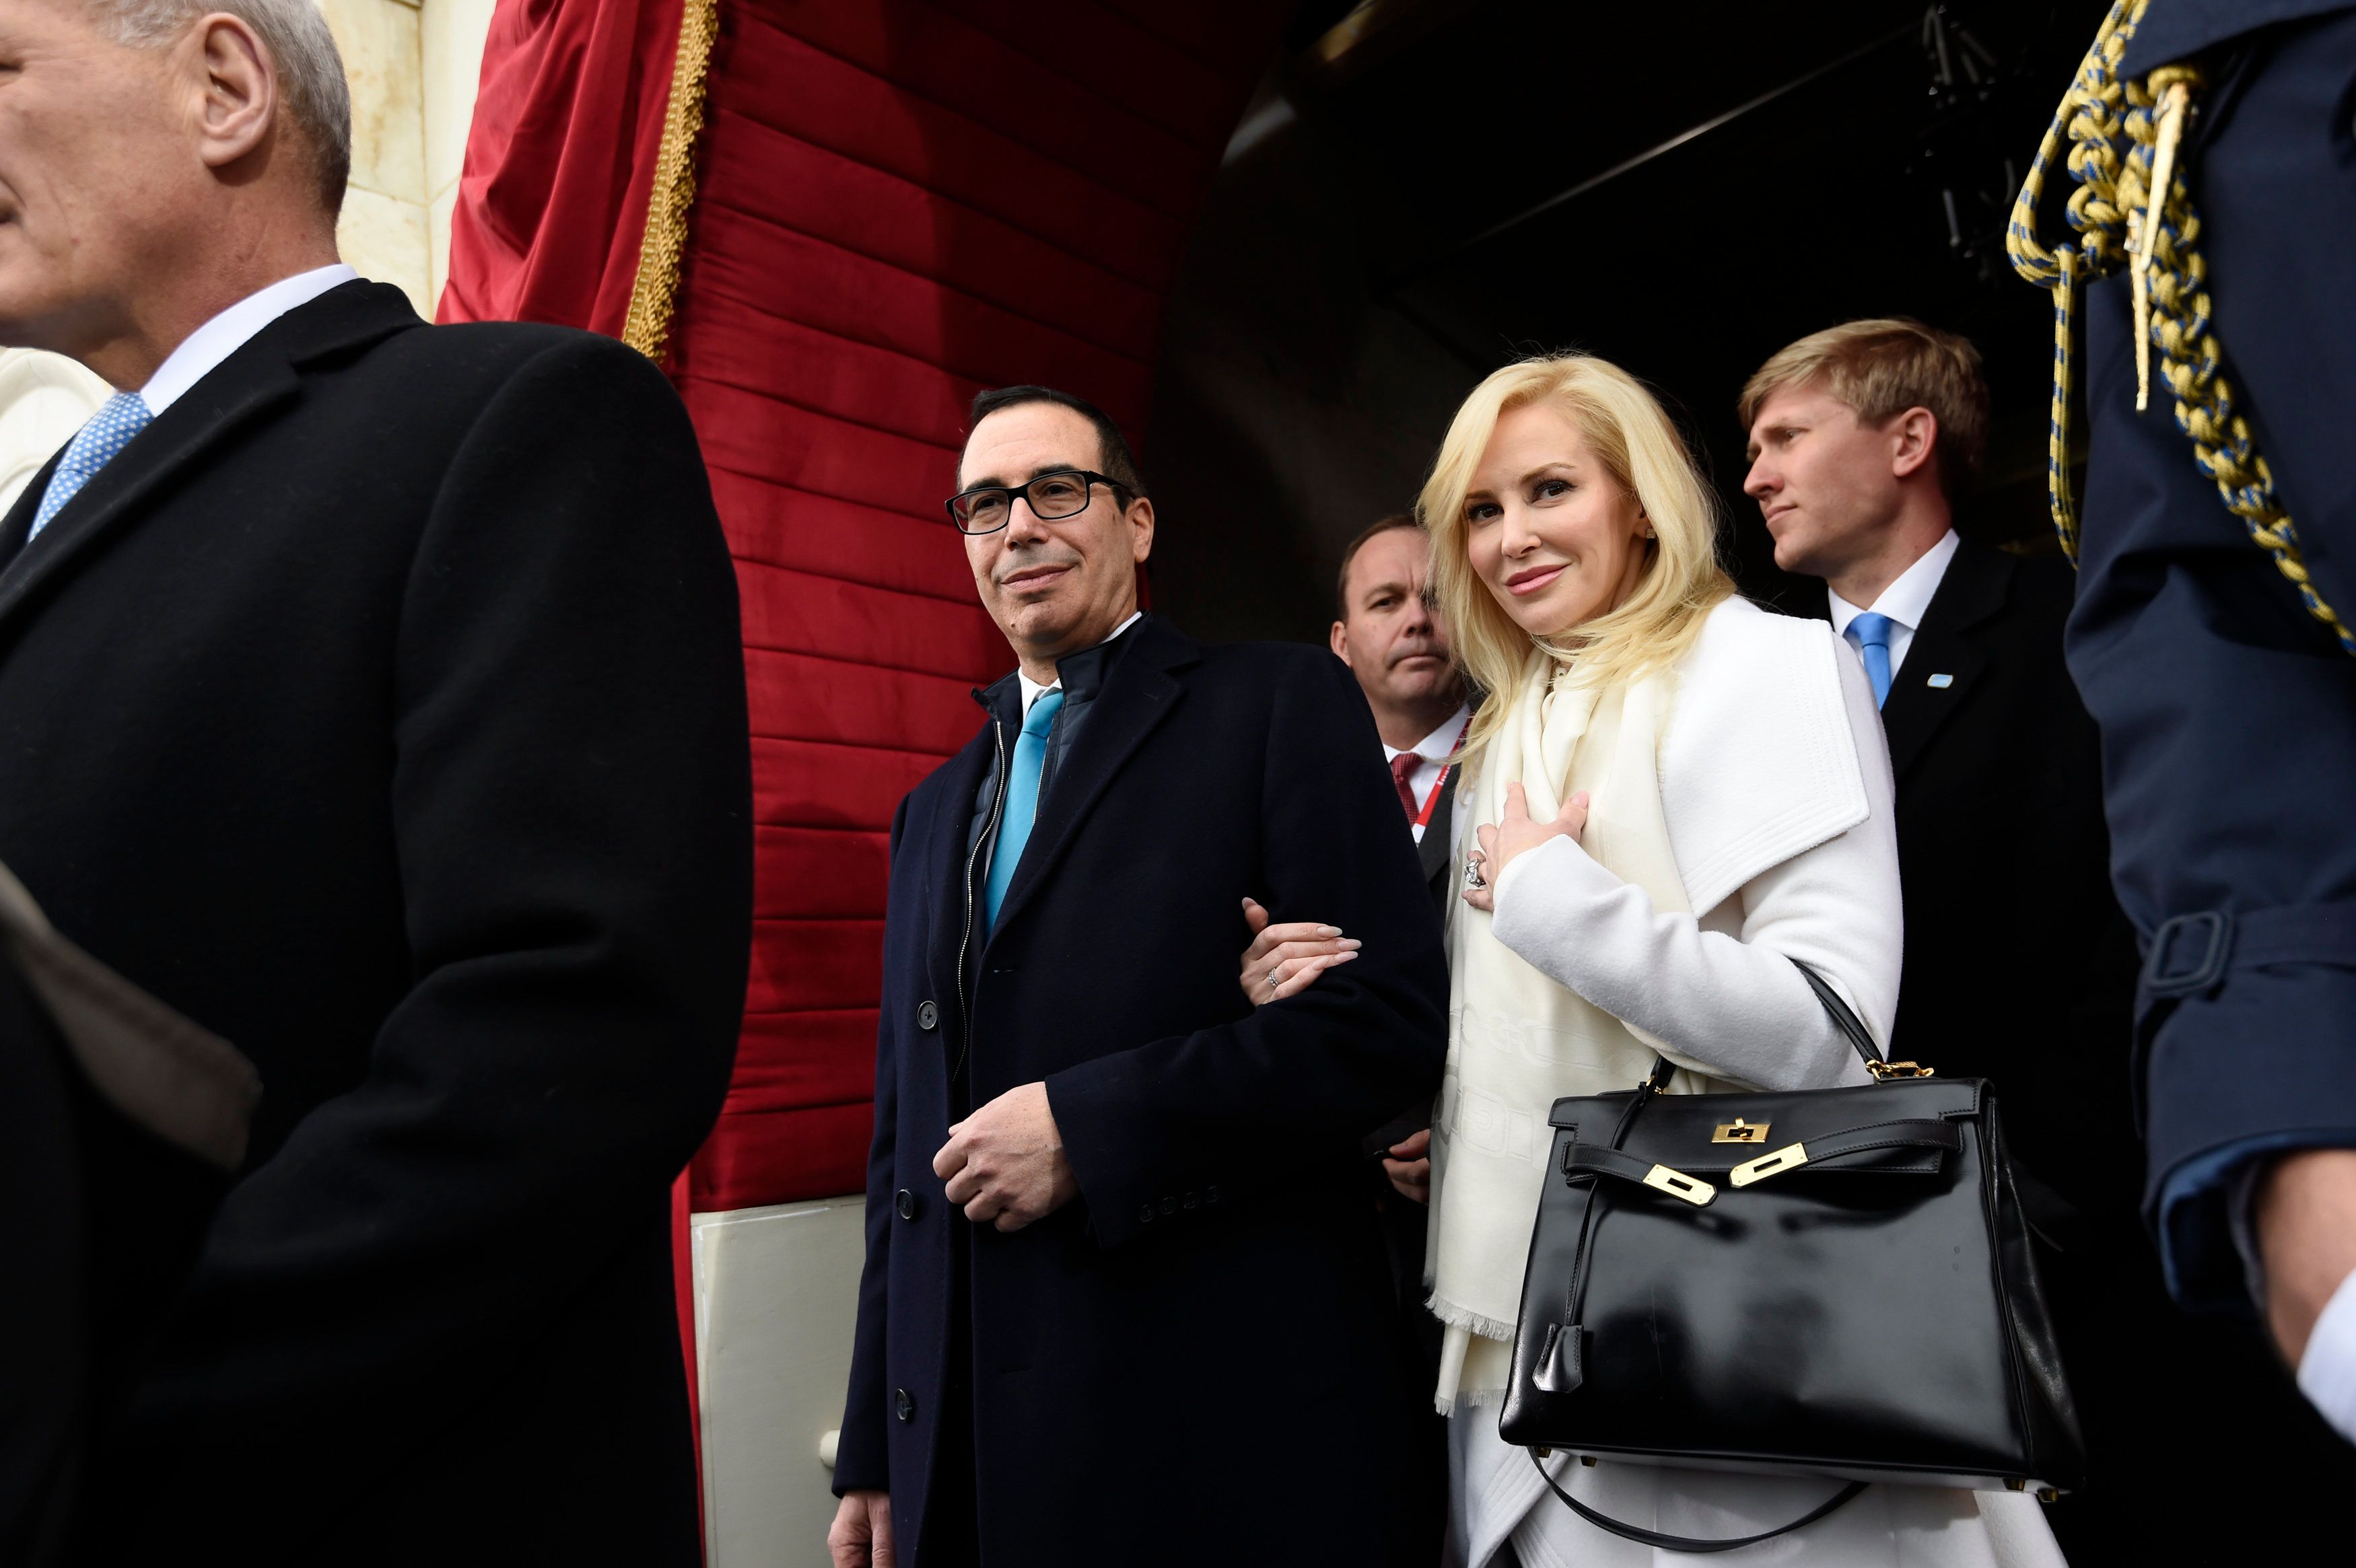 Louise Linton on Her Instagram Feud: 'I Deserved the Criticism'